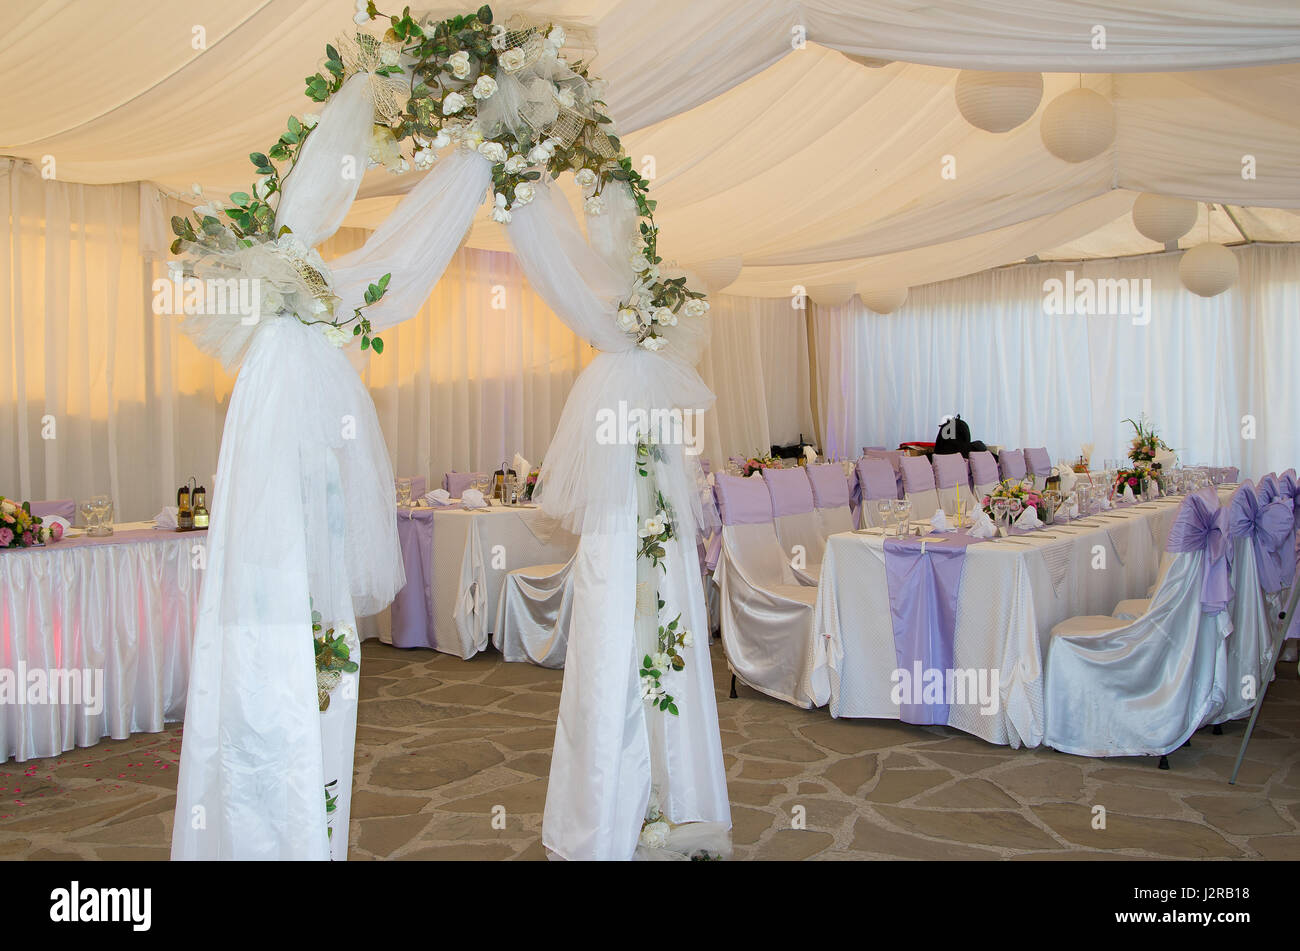 Wedding arch decorated with veil and white roses Stock Photo ...